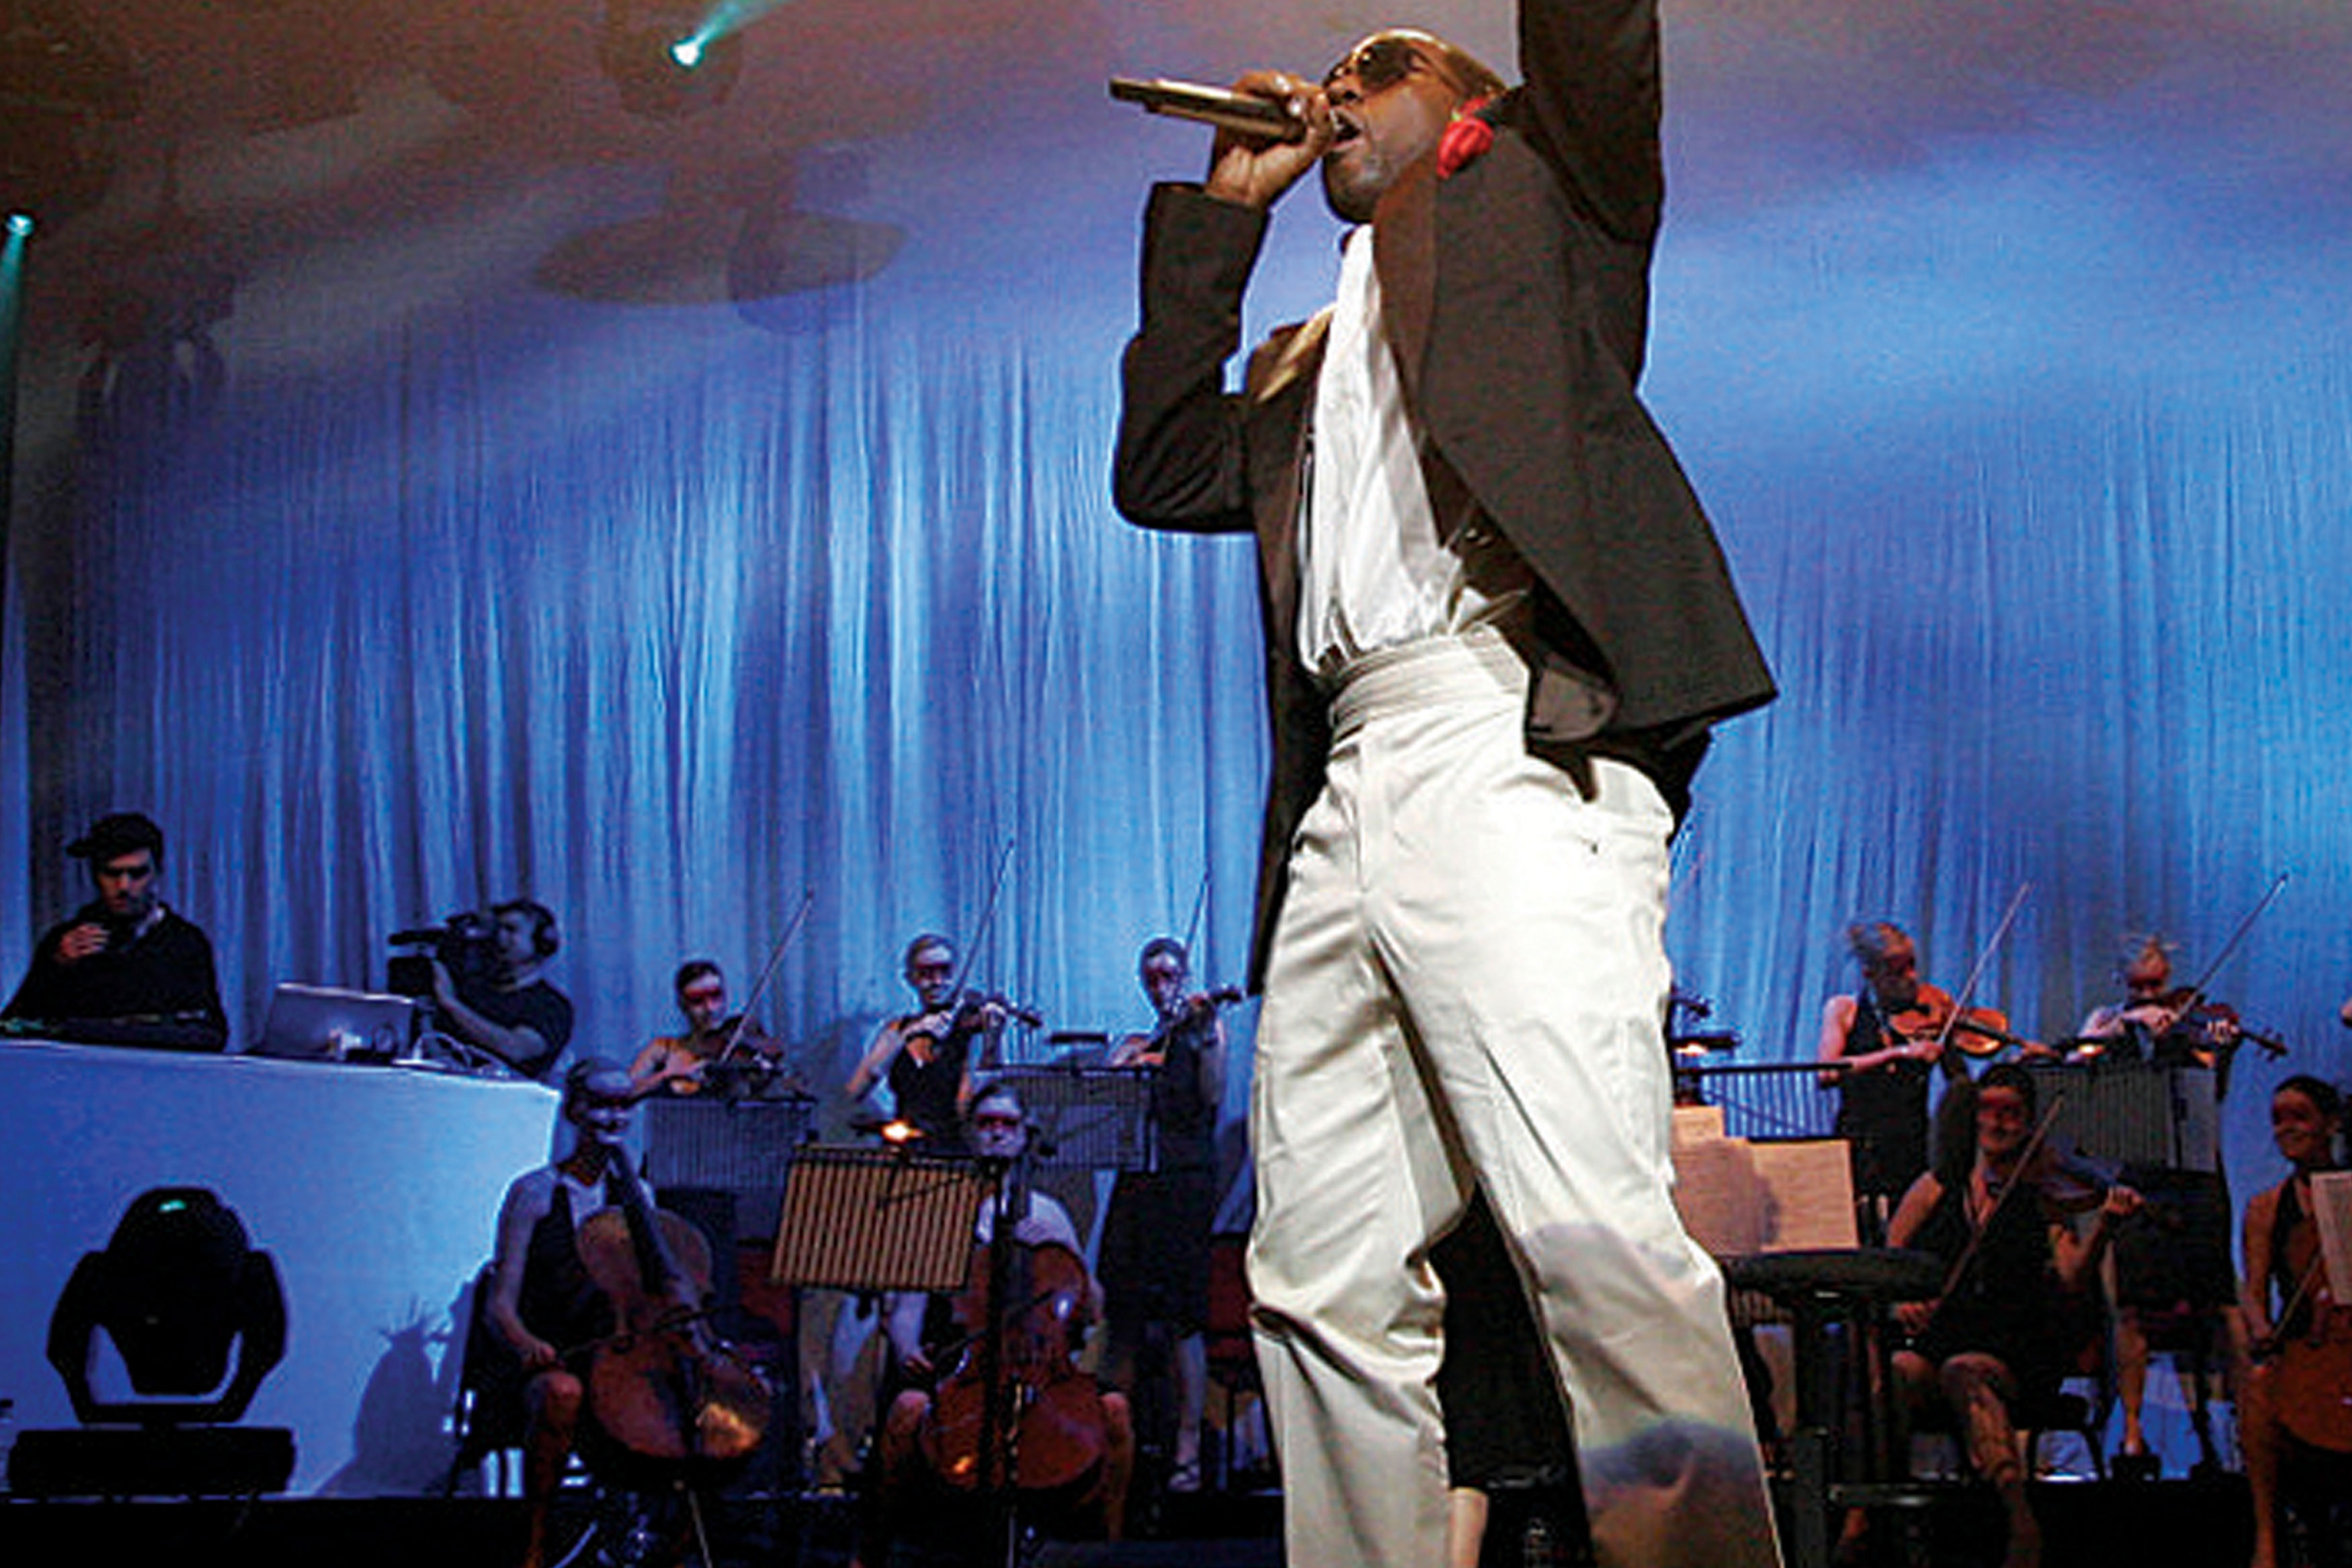 Kanye West in Studio One performing *Late Orchestration*